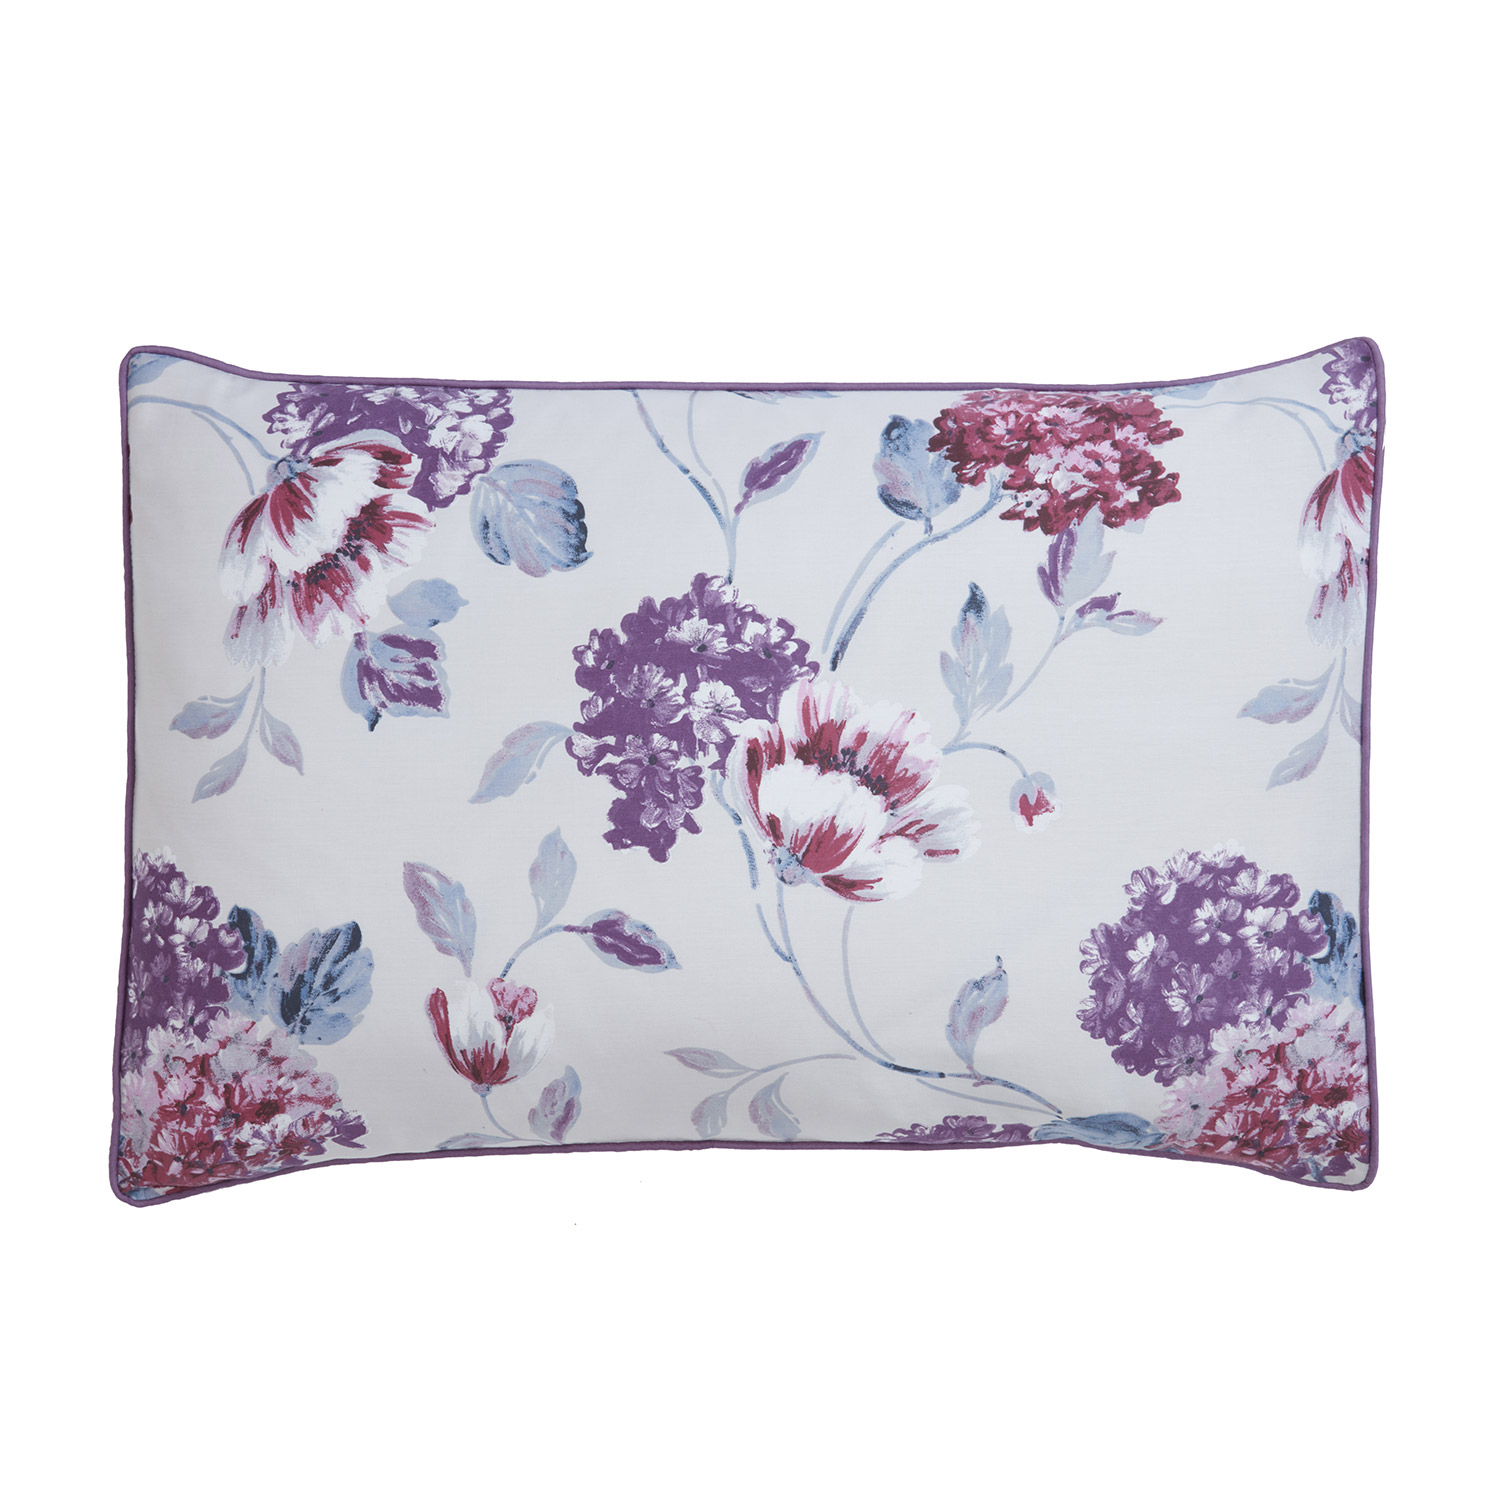 Abigail Plum Pure Cotton Printed Housewife Pillow Cases (Pair)